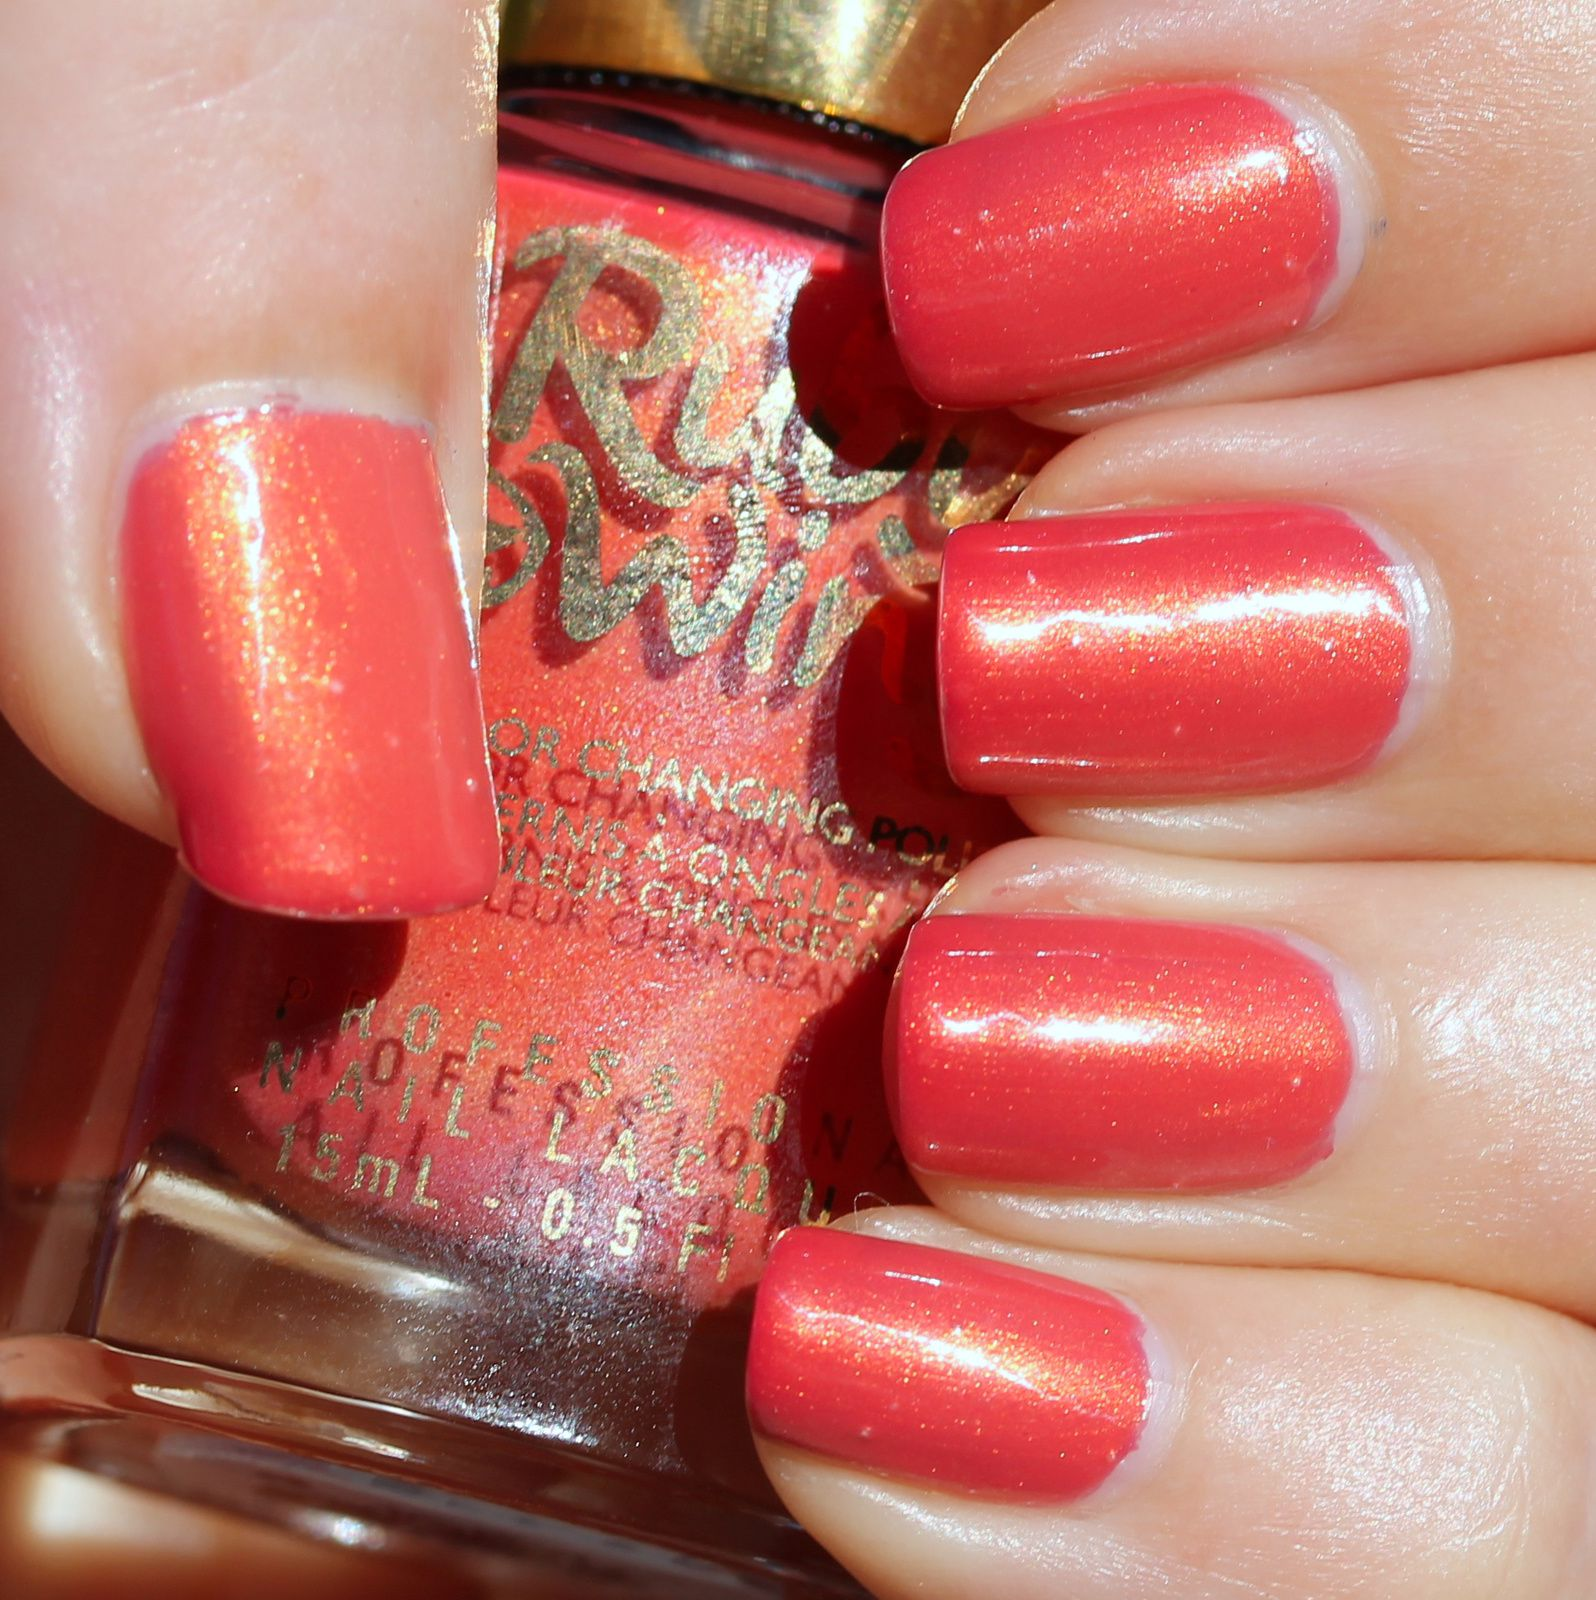 Sally Hansen Complete Care 4-in-1 Extra Moisturizing Nail Treatment / Ruby Wing Silk Sheets / HK Girl Top Coat